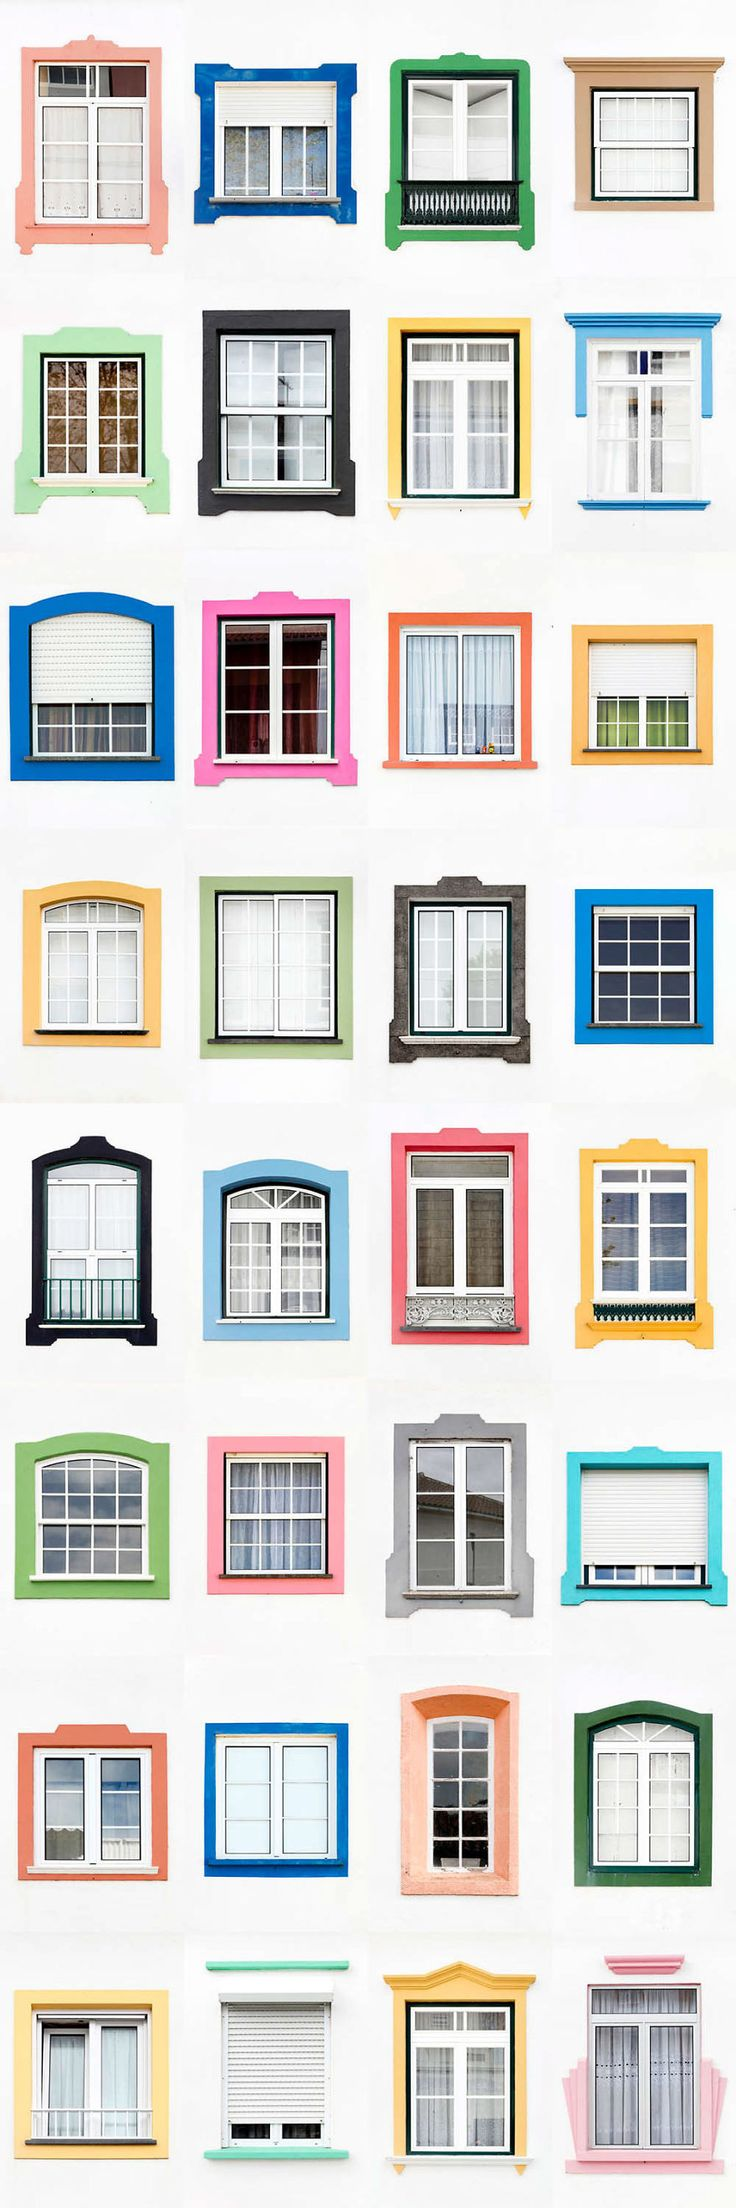 I Traveled All Over #Portugal To Photograph Windows, And Captured More Than 3200 Of Them - via BoredPanda 23-10-2017 | If you are planning a trip to Portugal, you can see which are the most beautiful cities to visit or what kind of architecture you like the most. Photo: Praia Da Vitoria